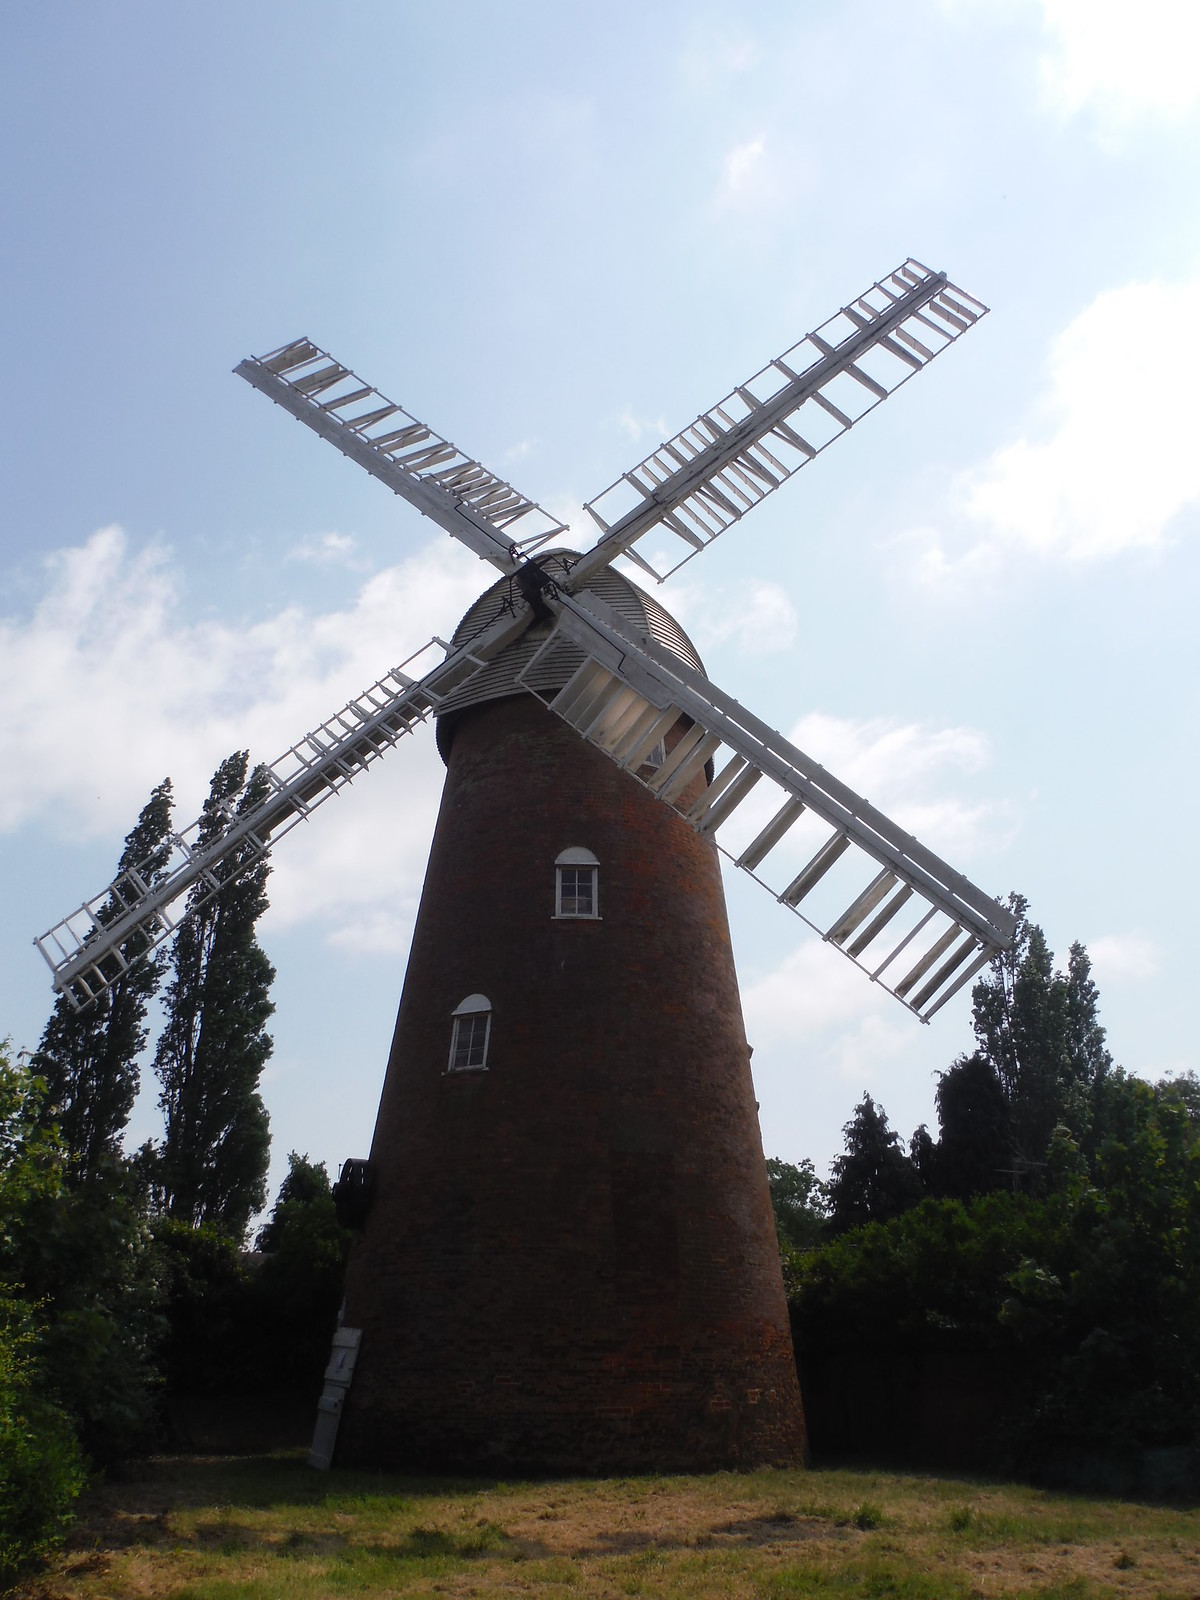 Stock Tower Mill SWC Walk 158 - Ingatestone to Battlesbridge or Wickford